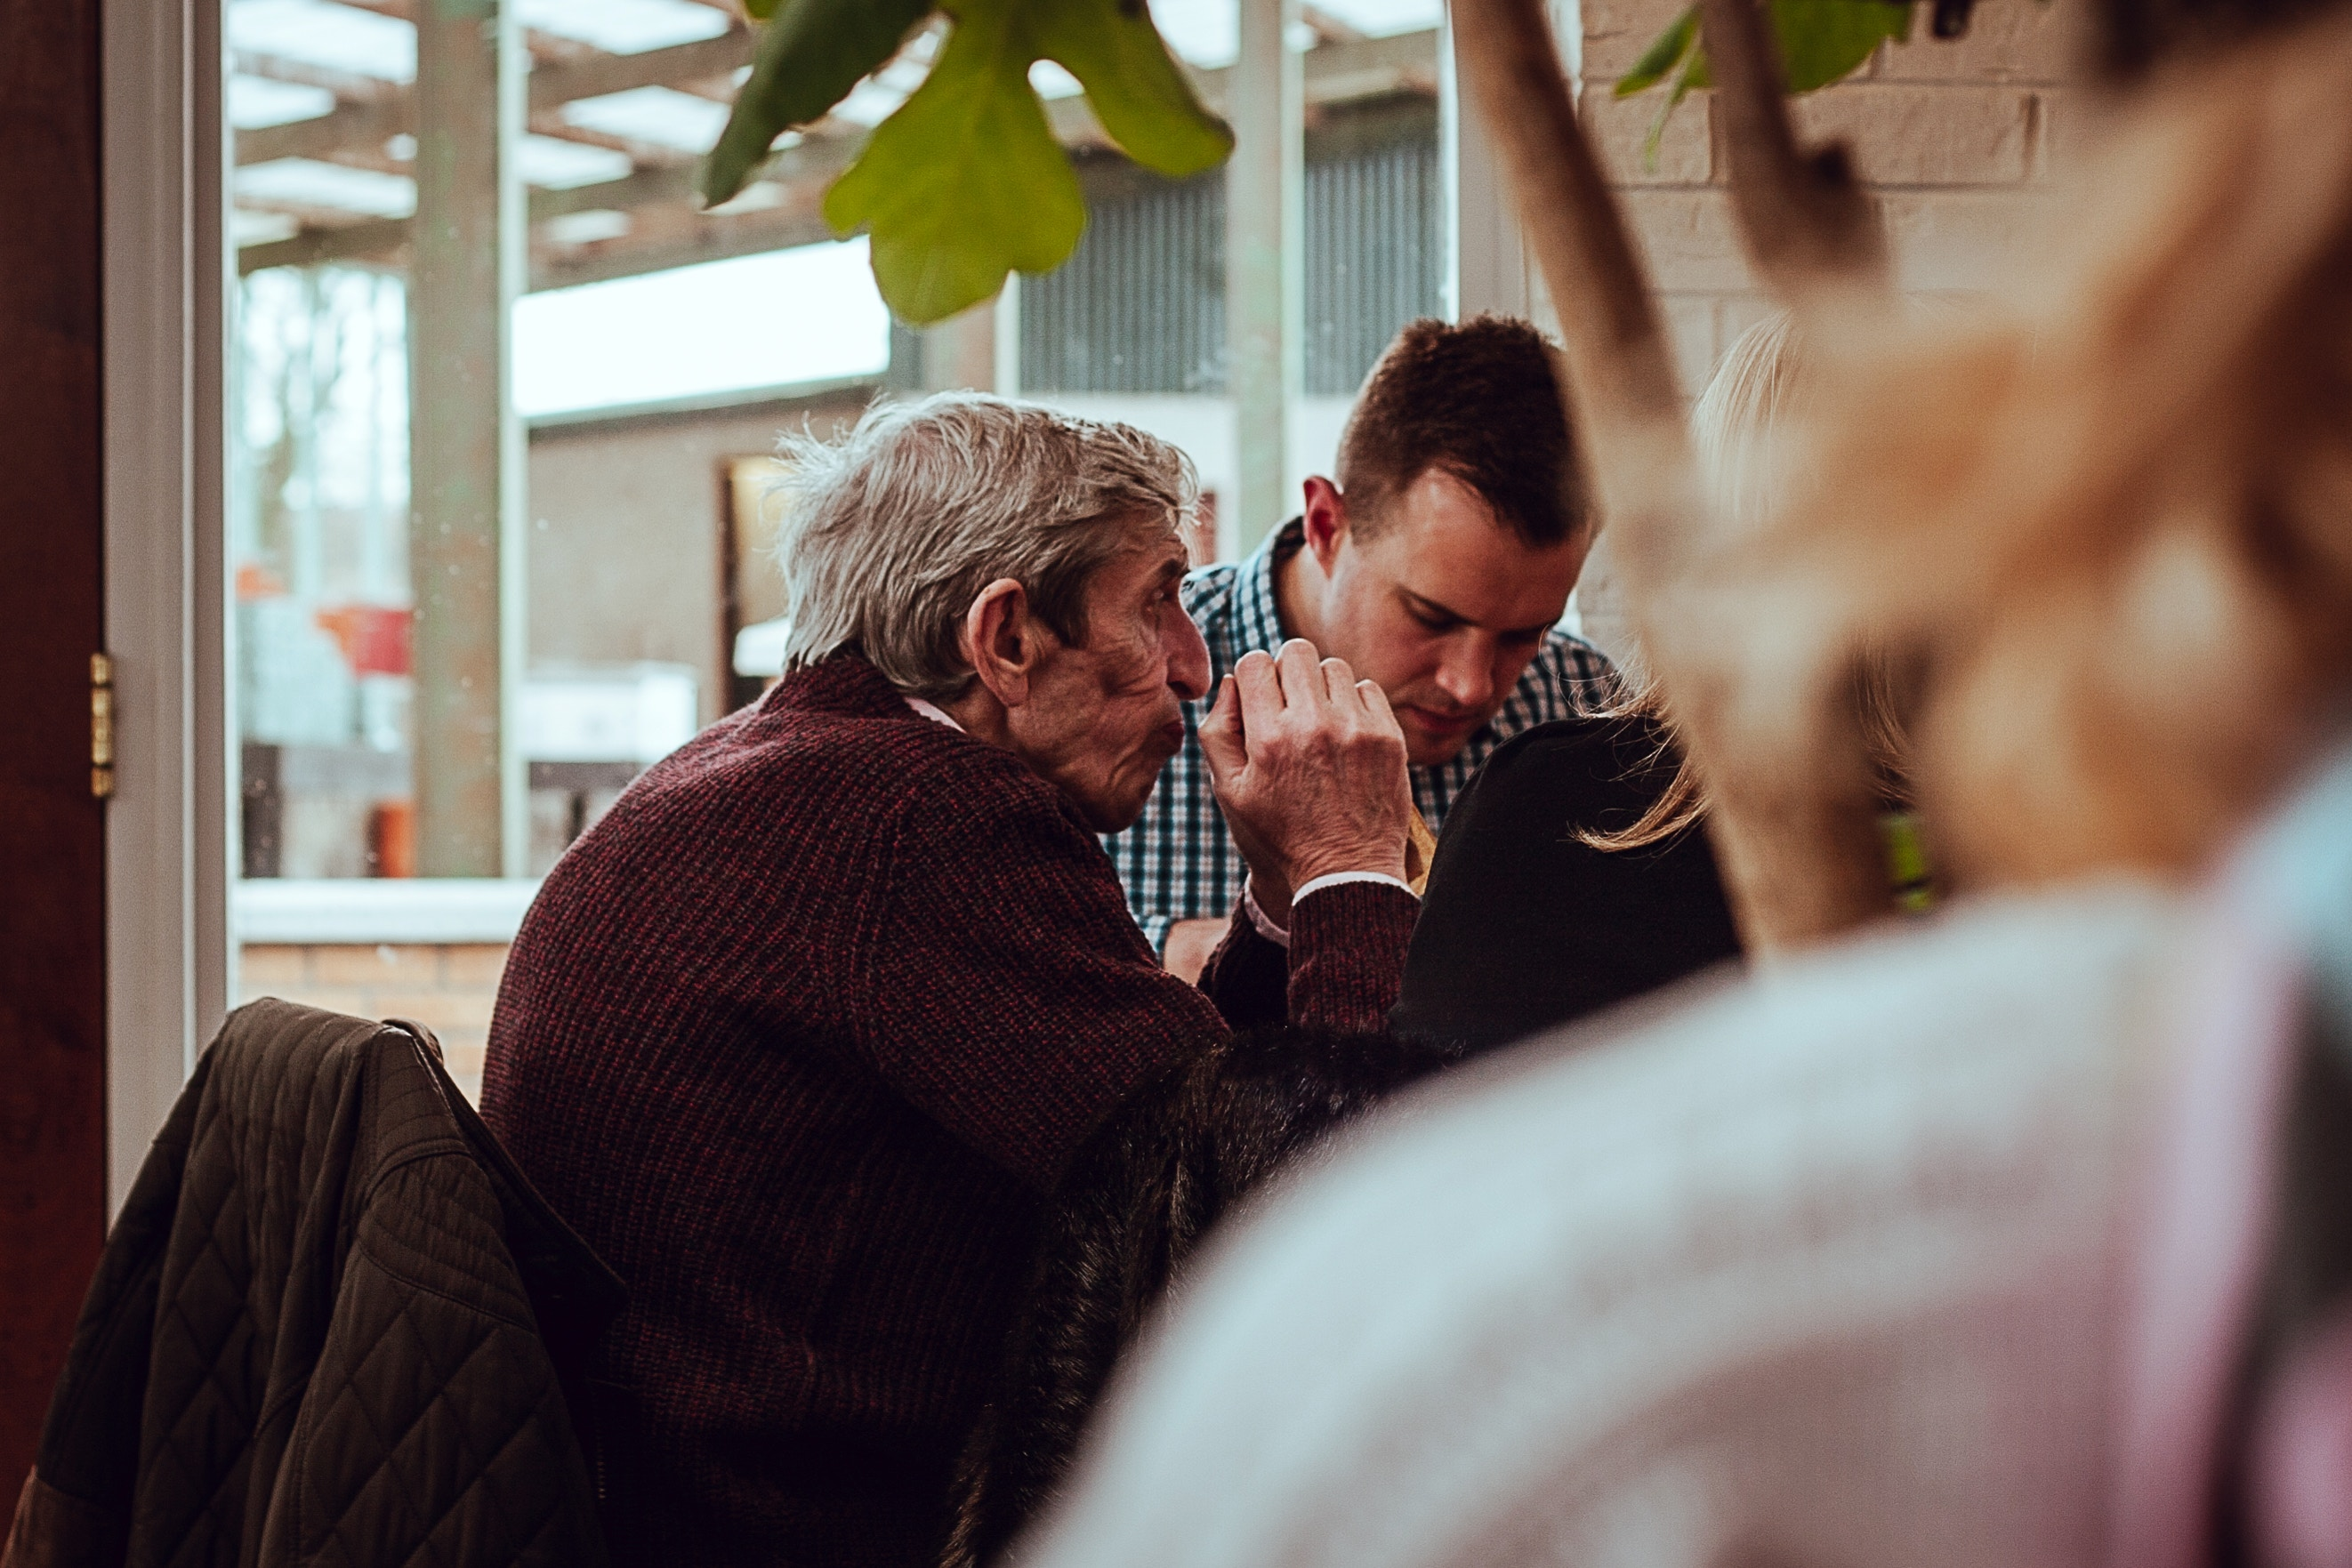 Why is age a barrier to intergenerational friendships?